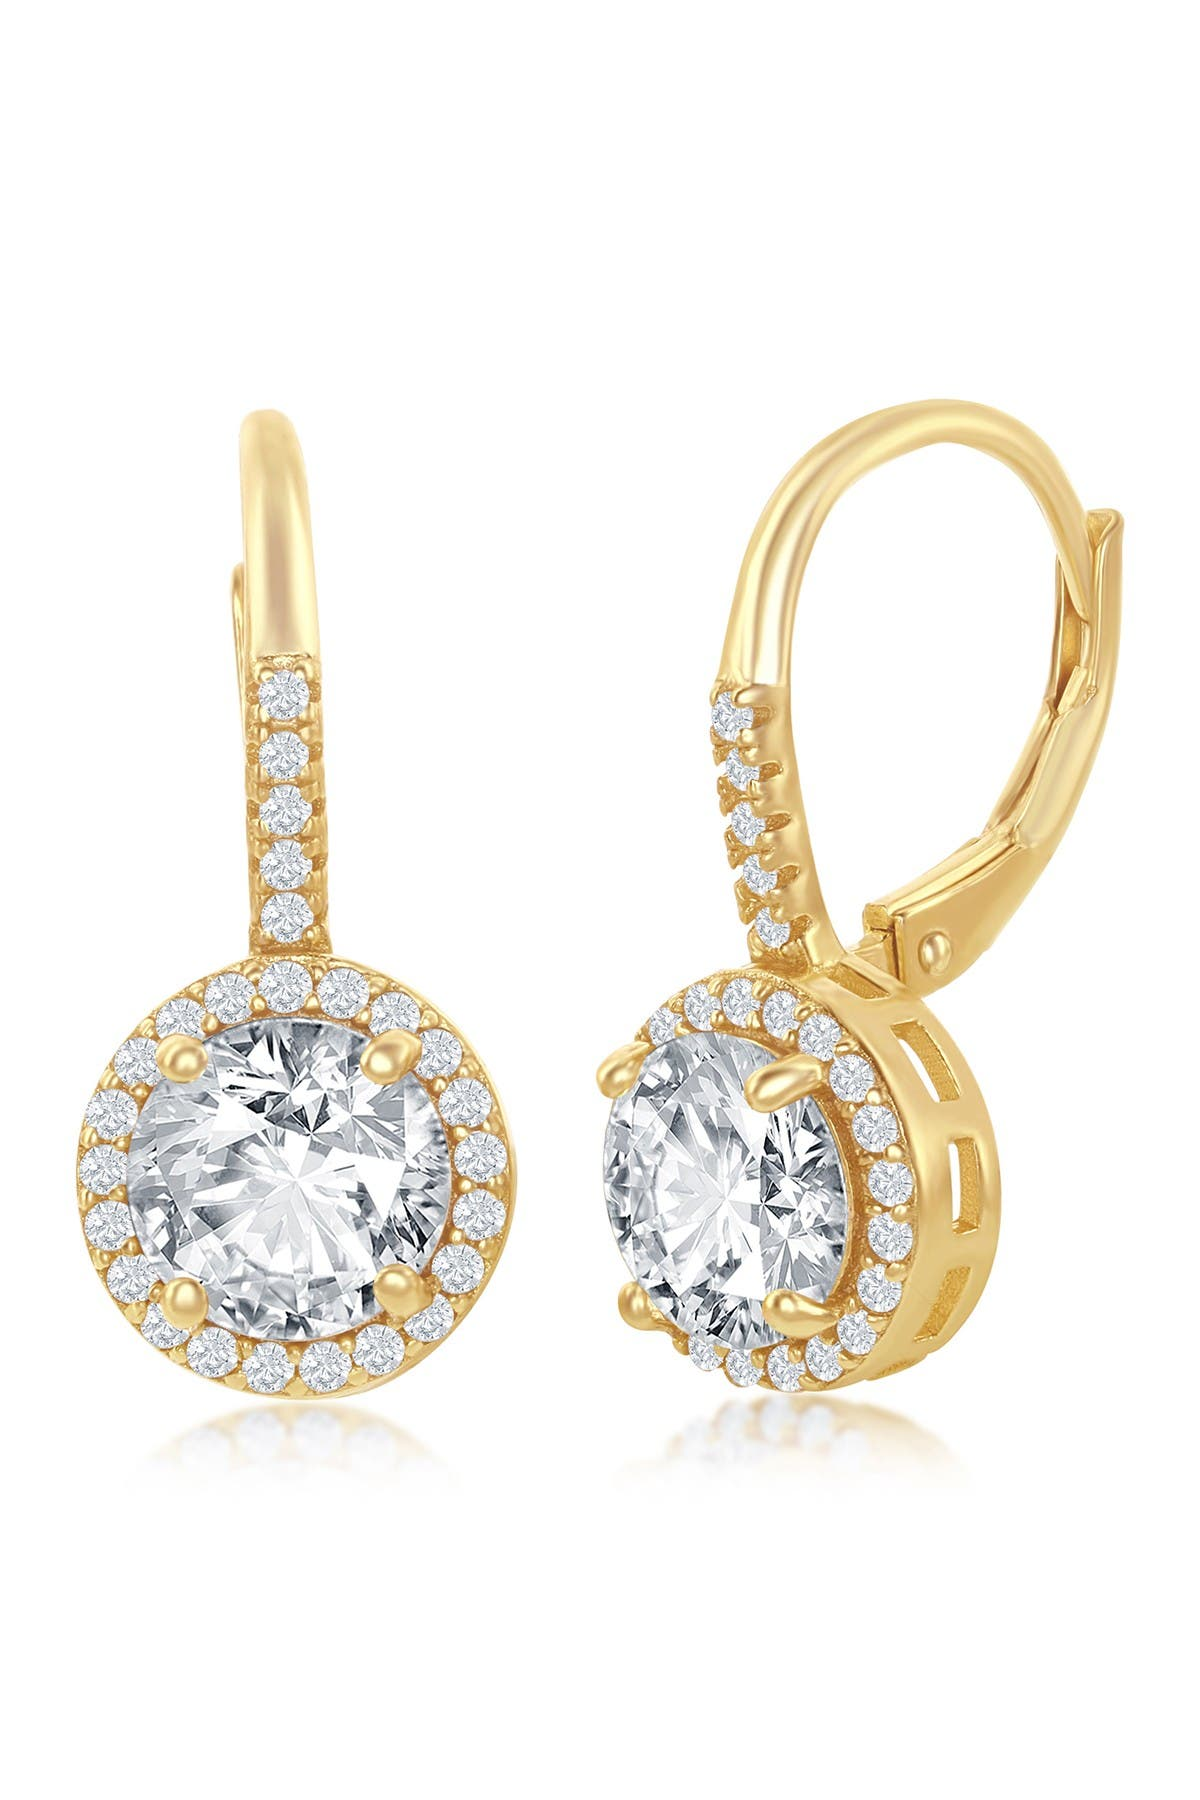 Image of Simona Jewelry 14K Yellow Gold Plated Sterling Silver Round-Cut CZ Halo Drop Earrings